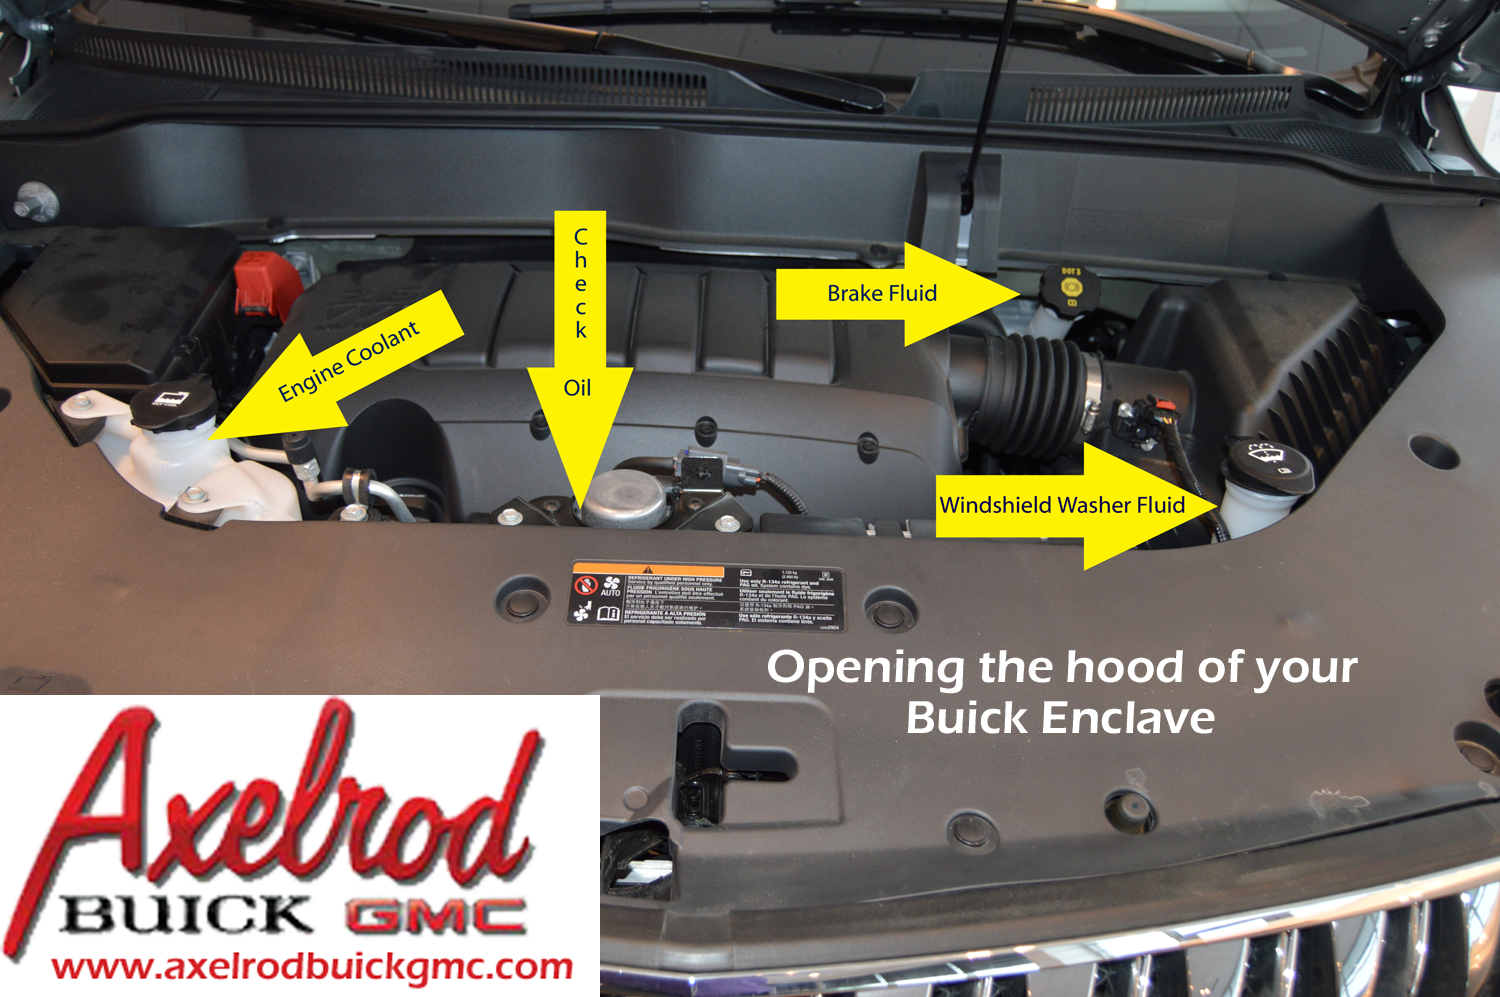 small resolution of finding the hood latch on your buick enclave ask axelrod buick gmc in cleveland